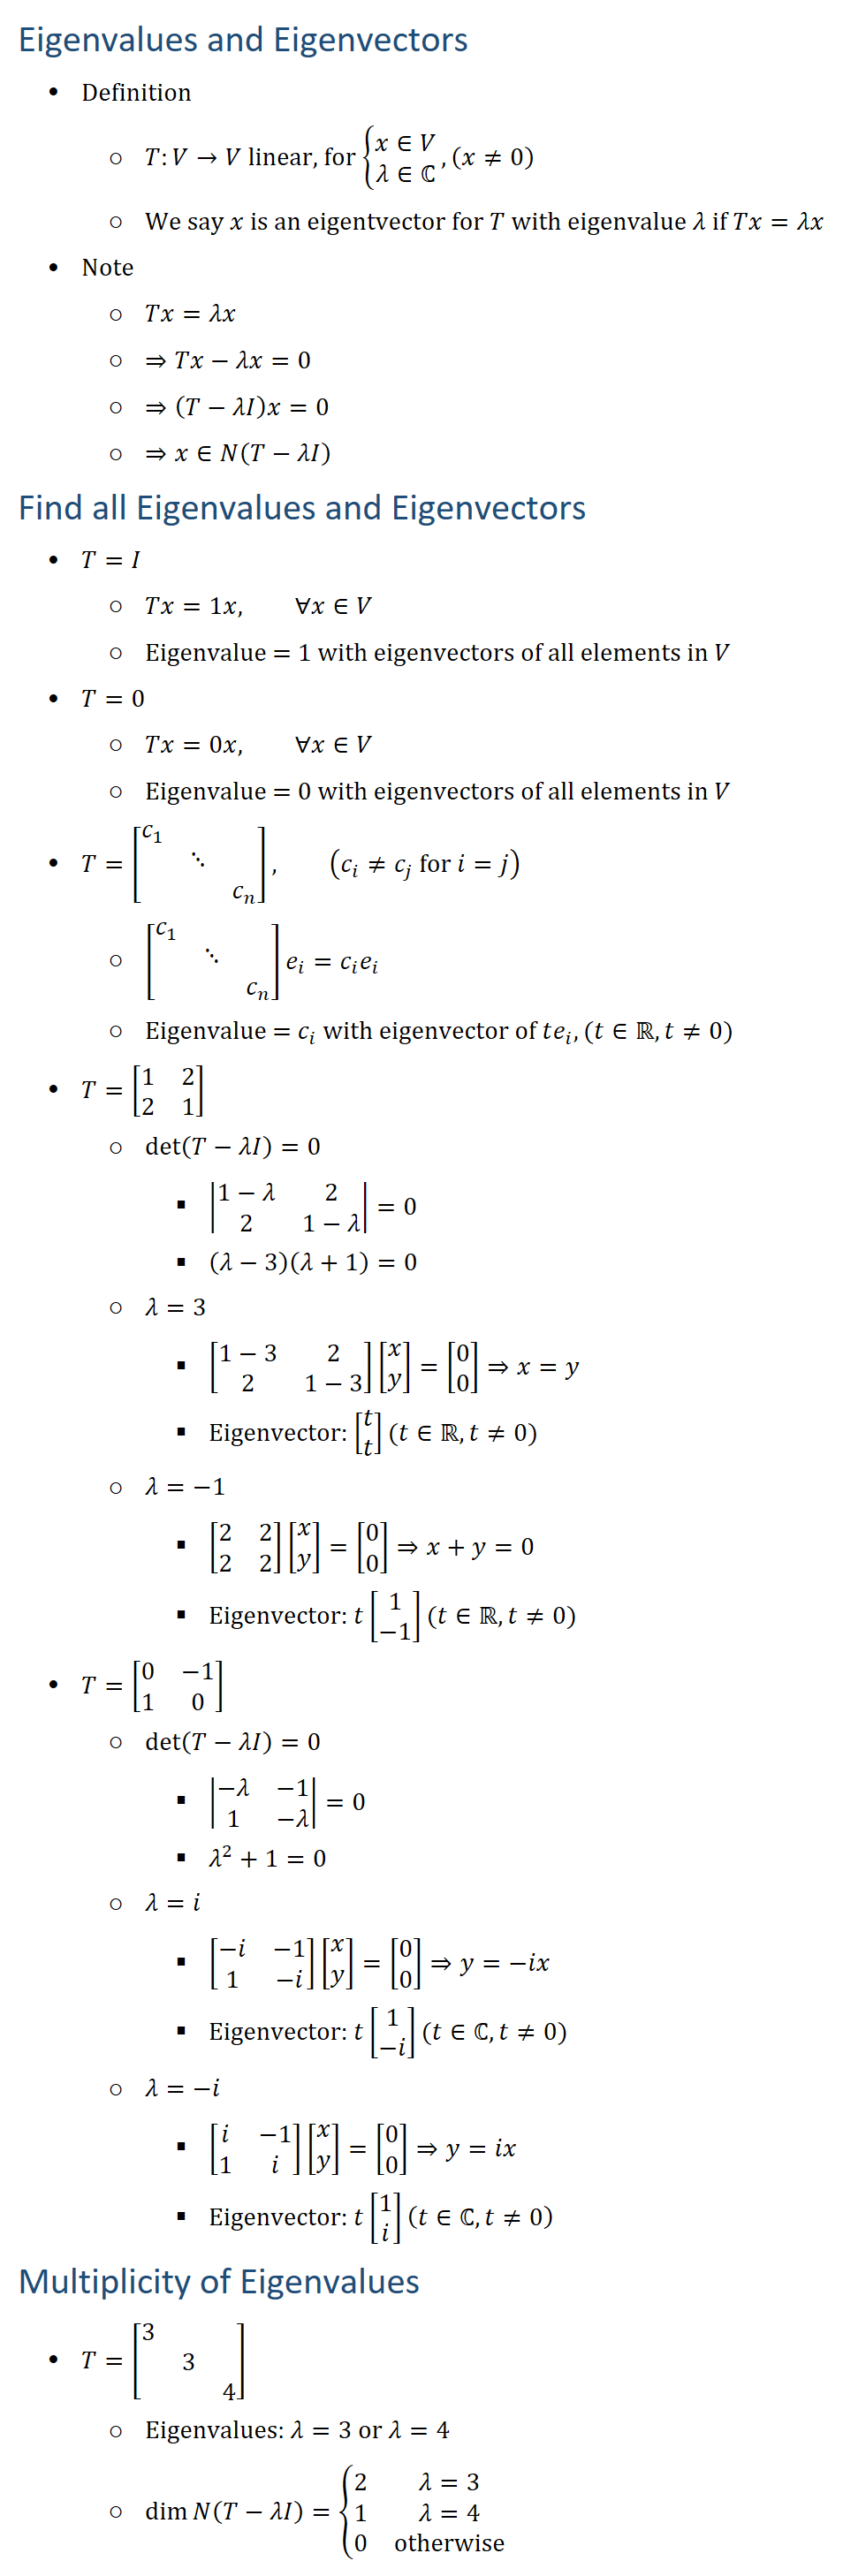 Eigenvalues and Eigenvectors • Definition ○ T:V→V linear, for {█(x∈V@λ∈ℂ)┤, (x≠0) ○ We say x is an eigentvector for T with eigenvalue λ if Tx=λx • Note ○ Tx=λx ○ ⇒Tx−λx=0 ○ ⇒(T−λI)x=0 ○ ⇒x∈N(T−λI) Find all eigenvalues and eigenvectors • T=I ○ Tx=1x, ∀x∈V ○ Eigenvalue = 1 with eigenvectors of all elements in V • T=0 ○ Tx=0x, ∀x∈V ○ Eigenvalue = 0 with eigenvectors of all elements in V • T=[■(c_1&&@&⋱&@&&c_n )], (c_i≠c_j for i=j) ○ [■(c_1&&@&⋱&@&&c_n )] e_i=c_i e_i ○ Eigenvalue = c_i with eigenvector of te_i, (t∈R, t≠0) • T=[■8(1&2@2&1) ○ det⁡(T−λI)=0 § |■8(1−λ&2@2&1−λ)|=0 § (λ−3)(λ+1)=0 ○ λ=3 § [■8(1−3&2@2&1−3)][█(x@y)]=[█(0@0)]⇒x=y § Eigenvector: [█(t@t)](t∈R, t≠0) ○ λ=−1 § [■8(2&2@2&2)][█(x@y)]=[█(0@0)]⇒x+y=0 § Eigenvector: t[█(1@−1)](t∈R, t≠0) • T=[■8(0&−1@1&0) ○ det⁡(T−λI)=0 § |■8(−λ&−1@1&−λ)|=0 § λ^2+1=0 ○ λ=i § [■8(−i&−1@1&−i)][█(x@y)]=[█(0@0)]⇒y=−ix § Eigenvector: t[█(1@−i)](t∈ℂ, t≠0) ○ λ=−i § [■8(i&−1@1&i)][█(x@y)]=[█(0@0)]⇒y=ix § Eigenvector: t[█(1@i)](t∈ℂ, t≠0) Multiplicity of Eigenvalues • T=[■(3&&@&3&@&&4)] ○ Eigenvalues: λ=3 or λ=4 ○ dim⁡〖N(T−λI)={■8(2&λ=3@1&λ=4@0&otherwise)┤〗